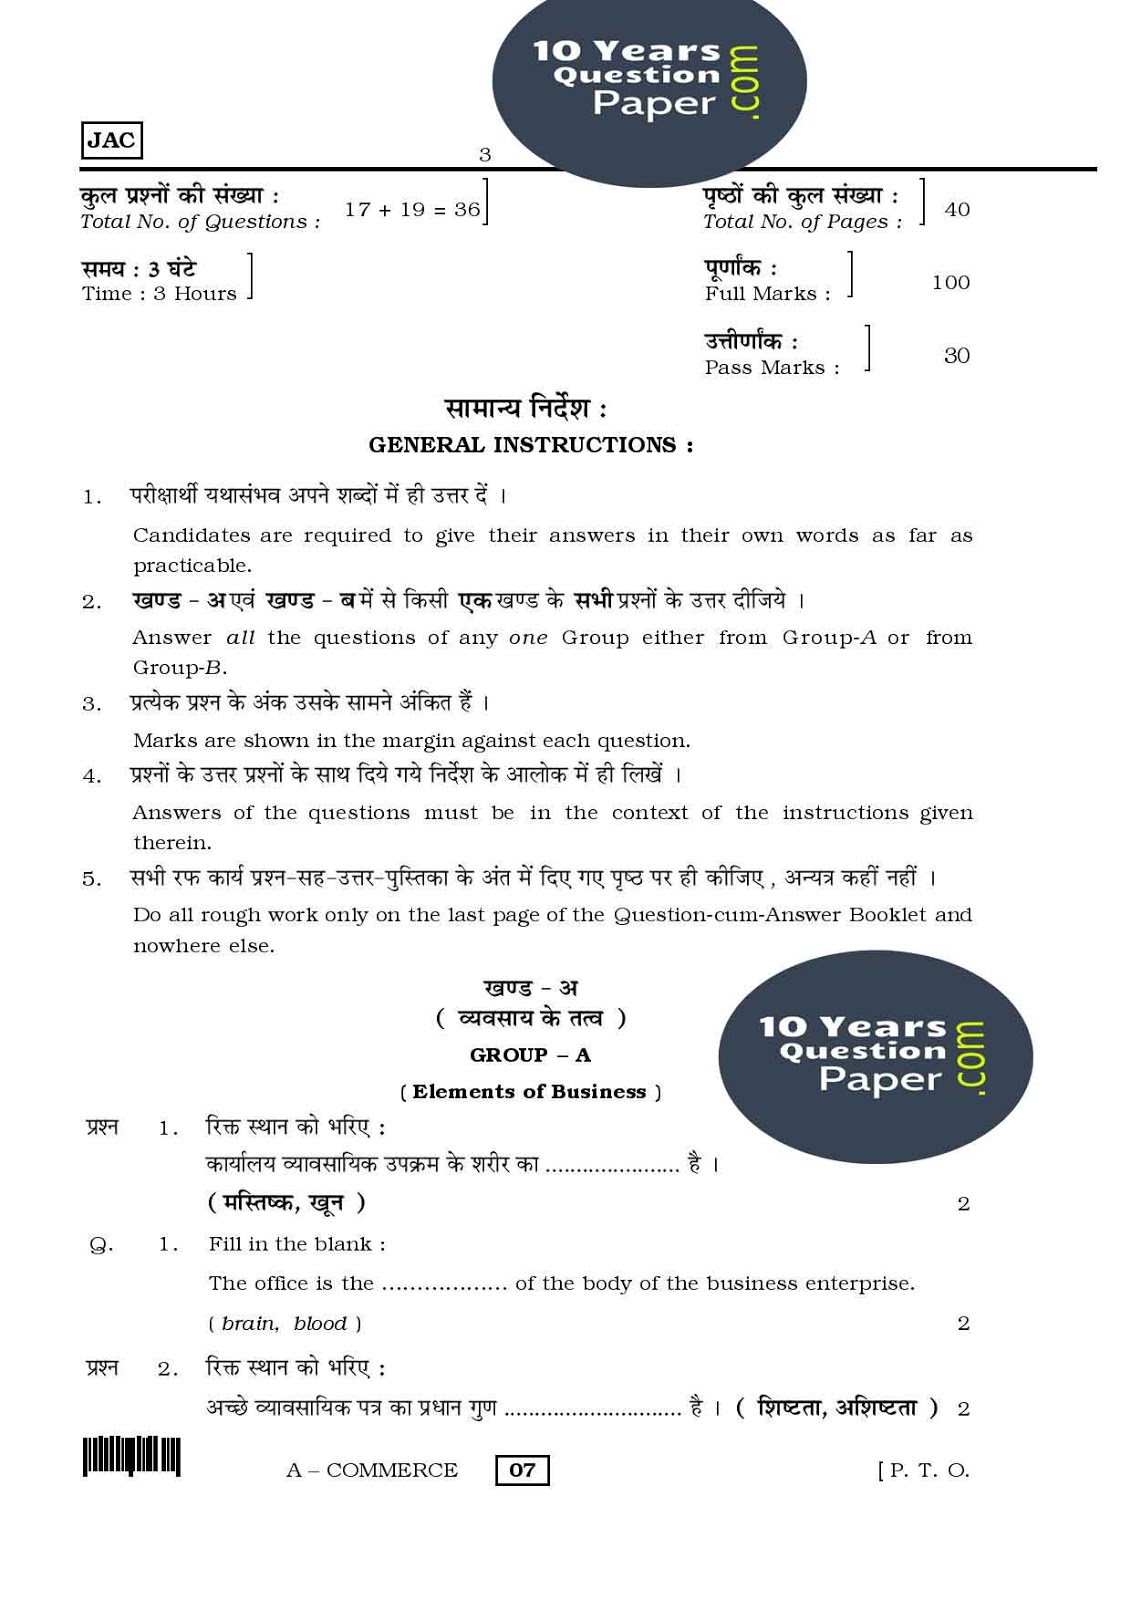 jharkhand board commerce sample paper class   jac class 12th 2016 commerce question paper